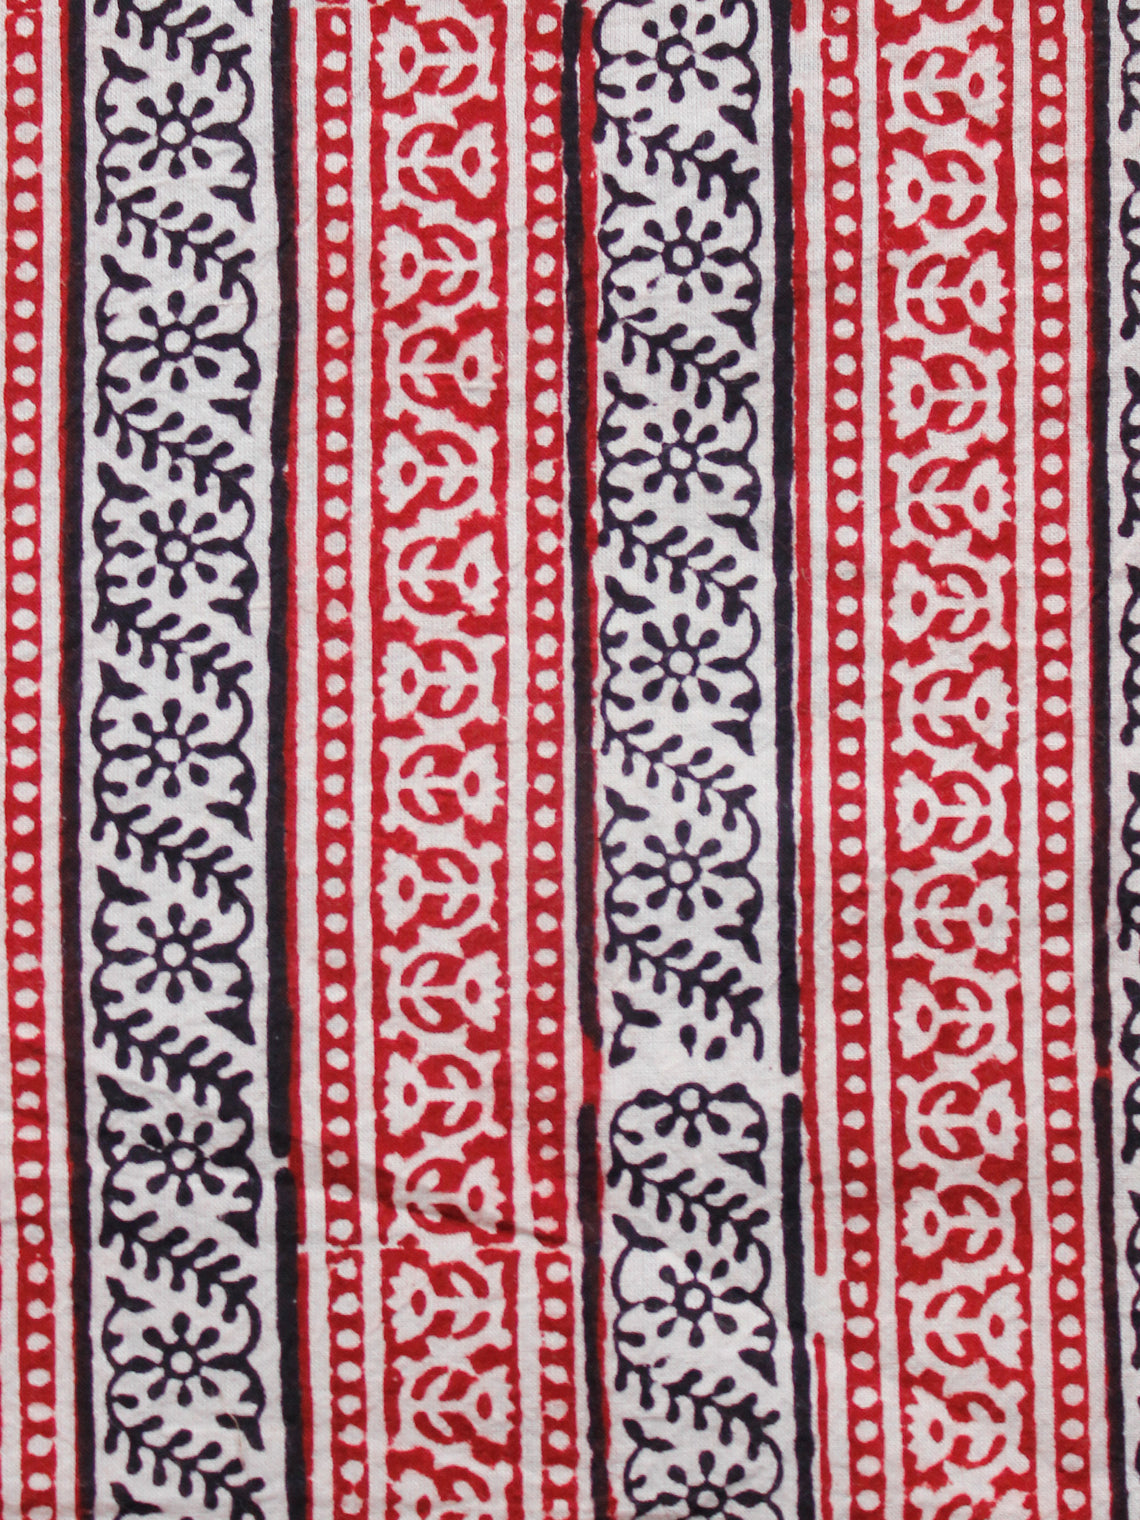 Beige Maroon Black Bagh Printed Cotton Fabric Per Meter - F005F1713